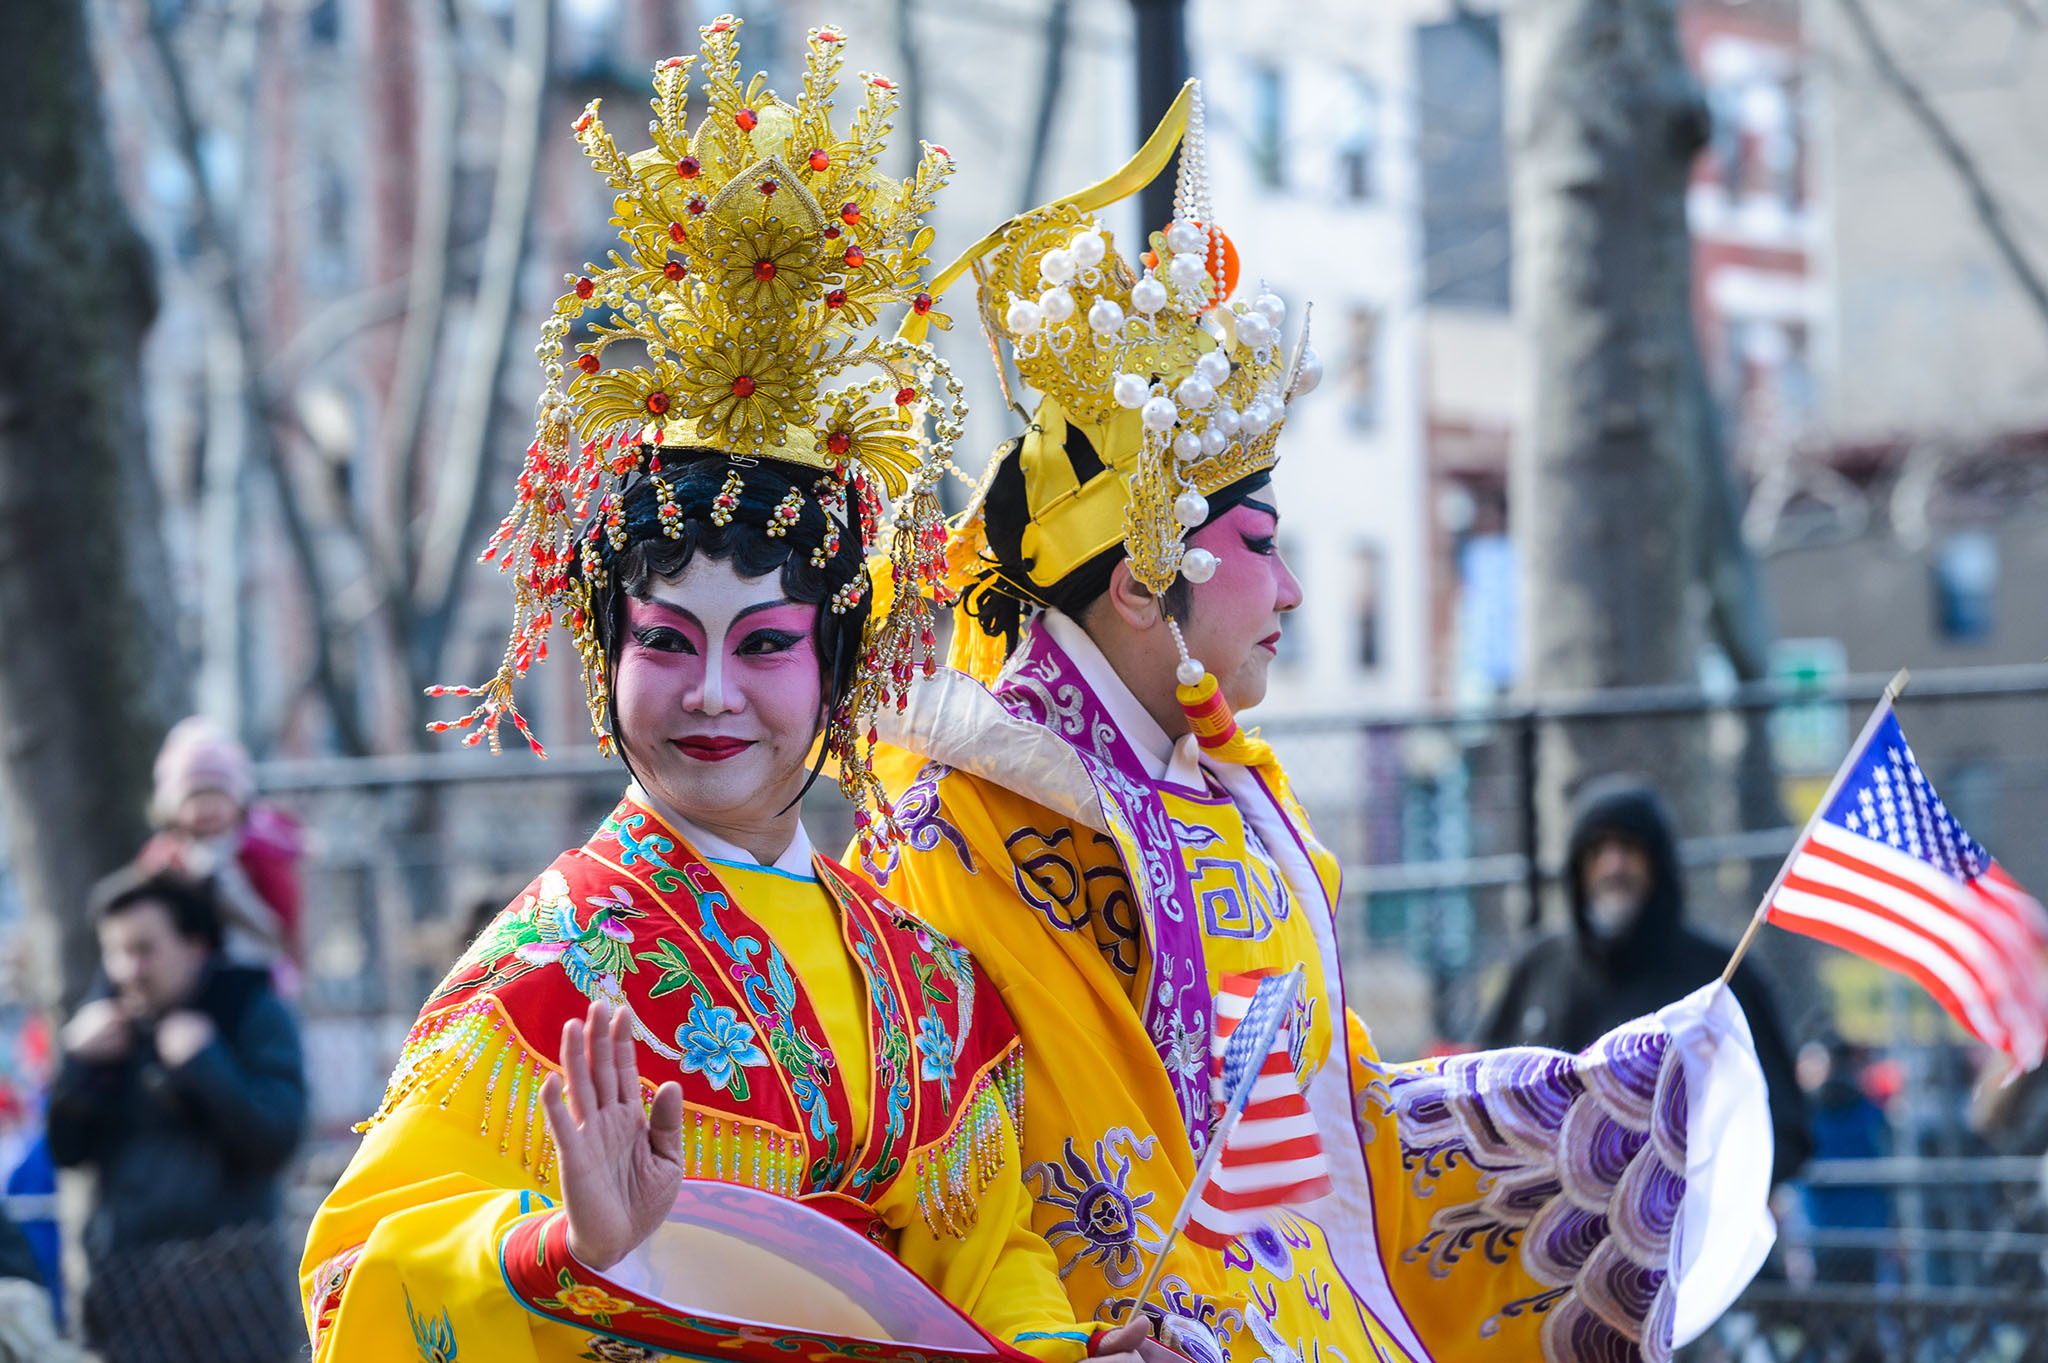 Lunar New Year 2020 Nyc Best NYC Events In February 2020 With Things To Do In Winter